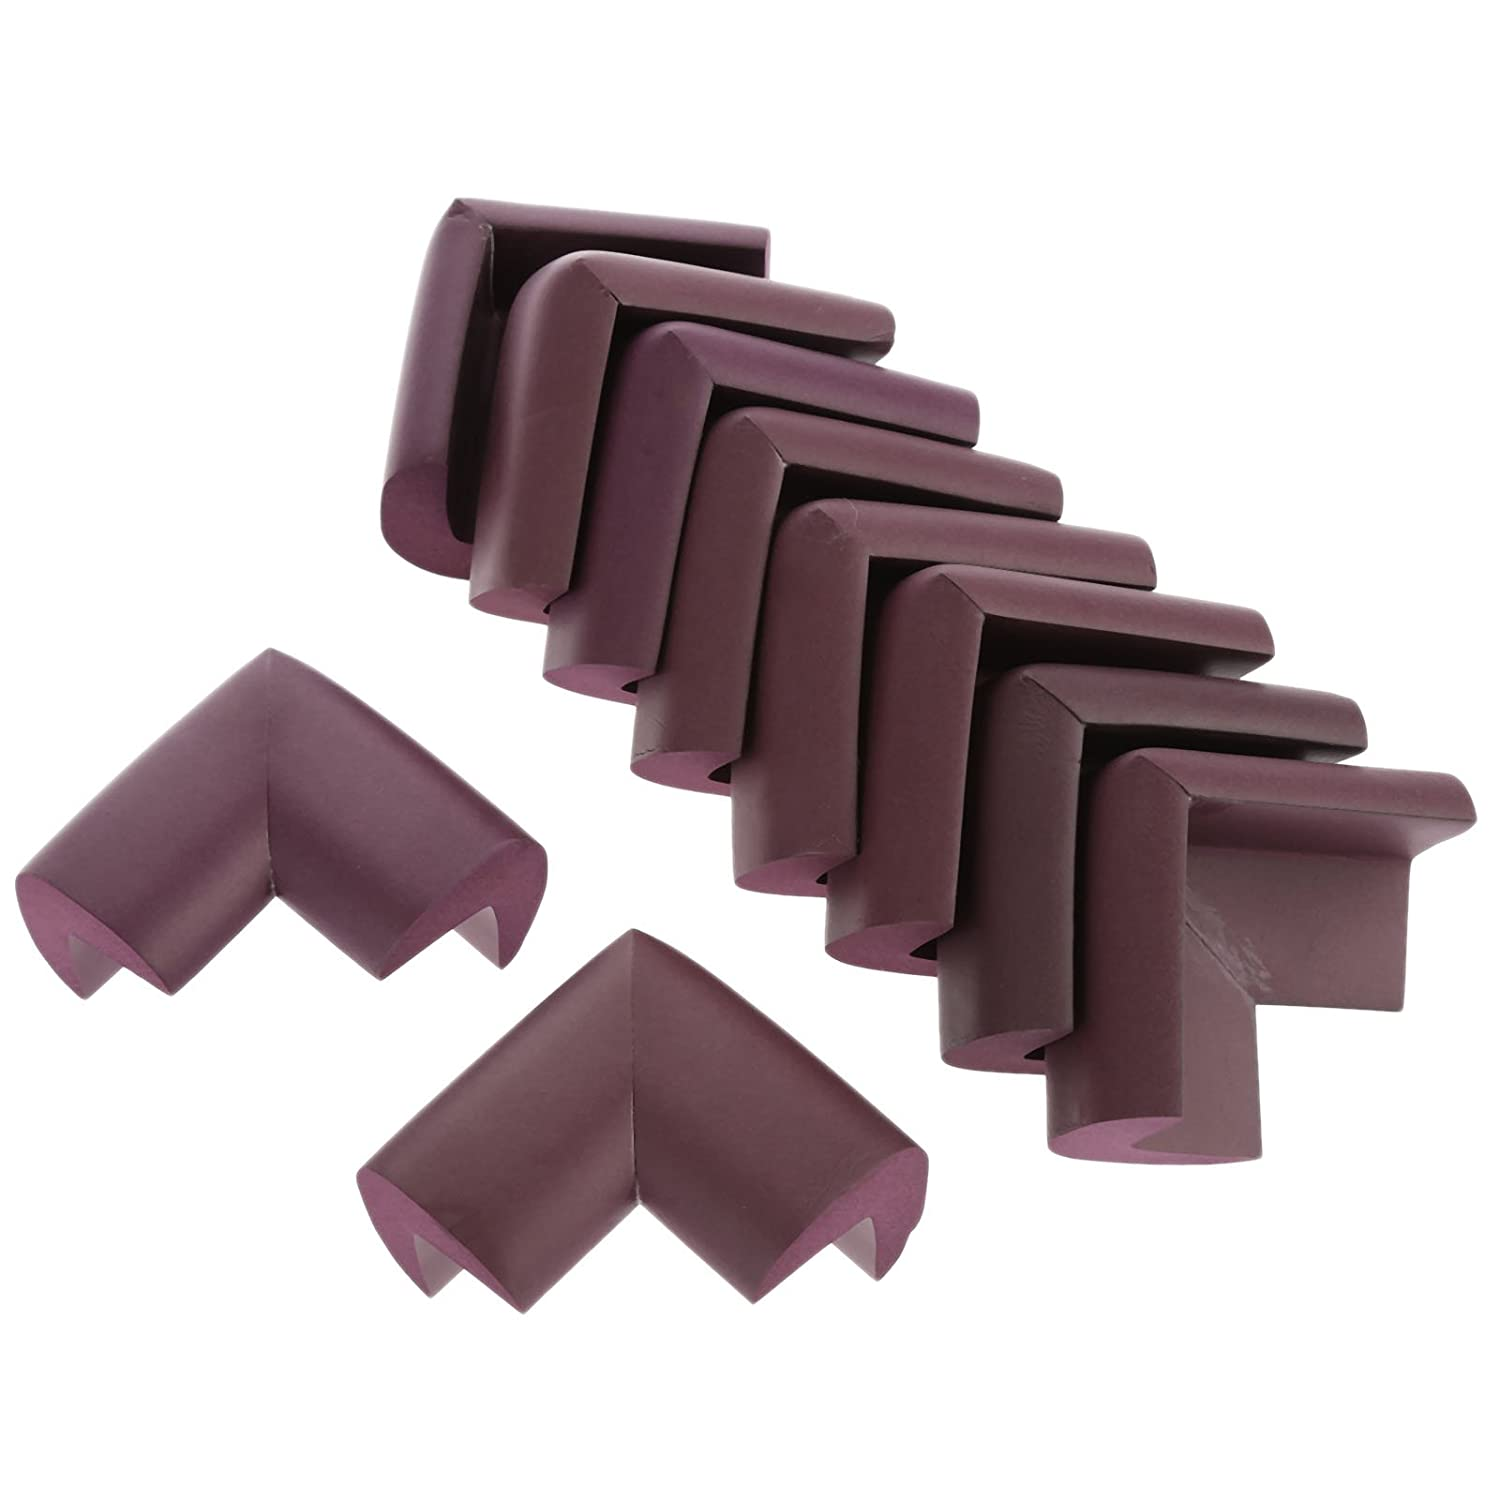 10pcs Angle Form Extra Thick Furniture Table Edge Protectors Foam Baby Safety Bumper Guard-Wood Color dophee